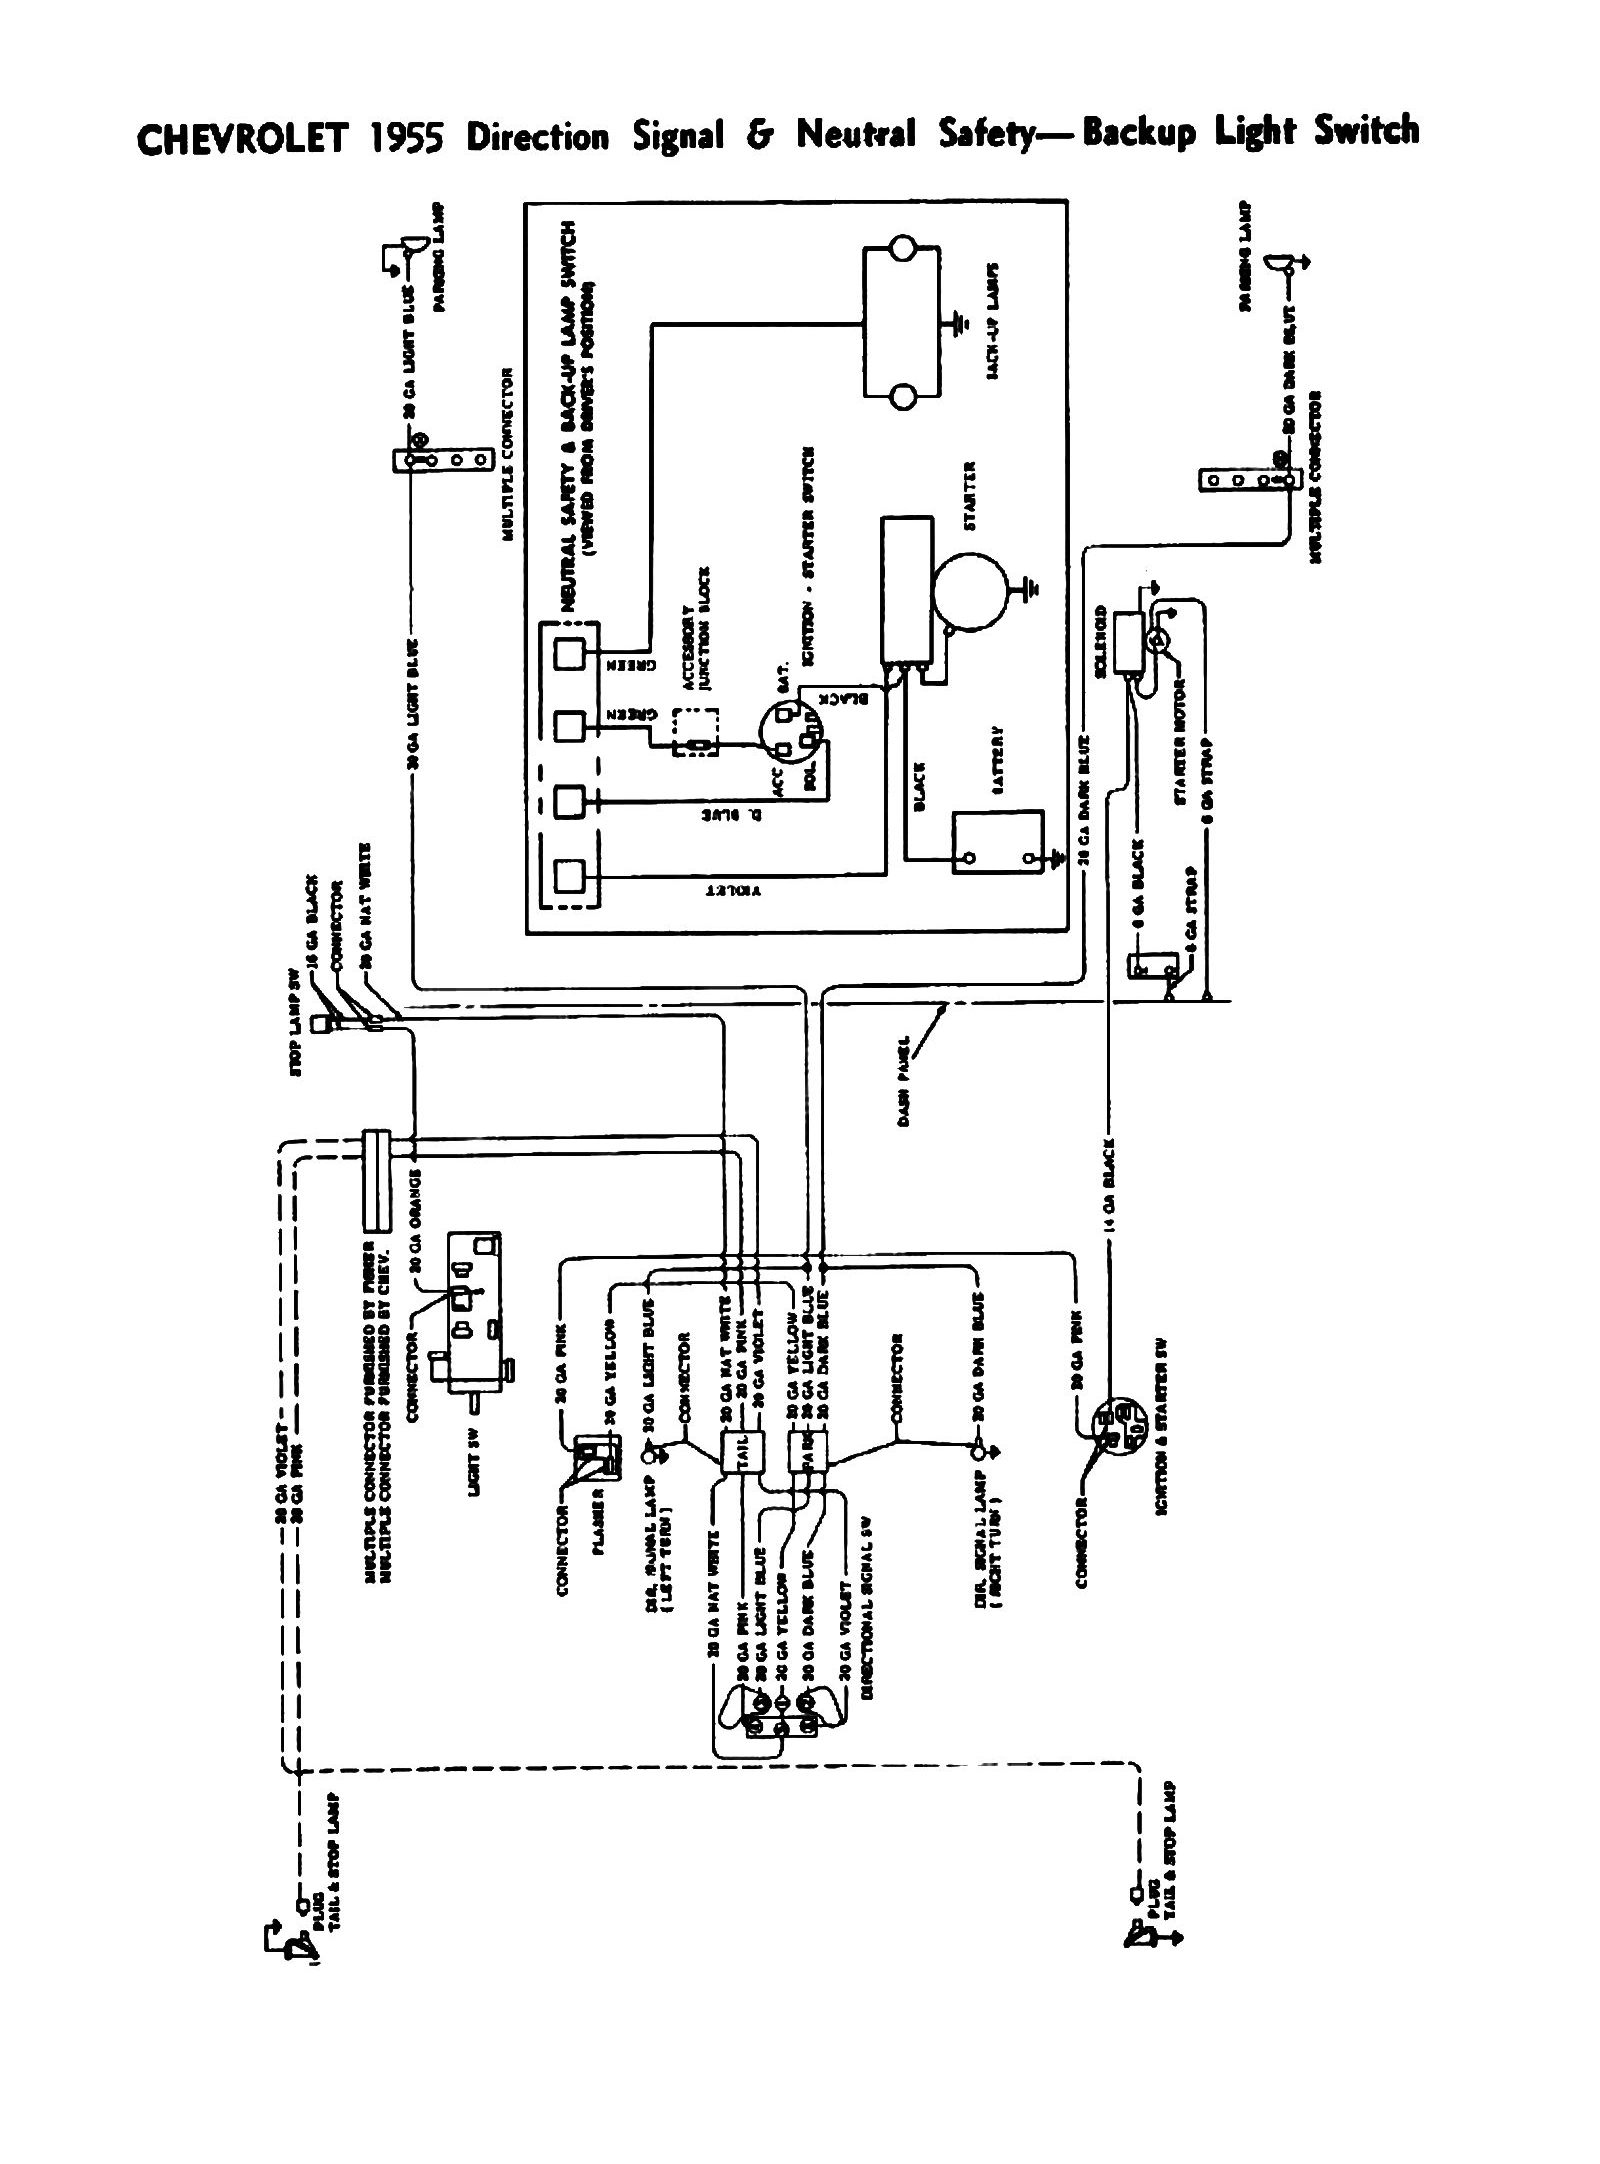 chevy wiring diagrams 57 Chevy Truck Dash Wiring Diagram 57 chevy wiring diagram 57 Chevy Firing Order Chevy Trailer Wiring Diagram 57 Chevy Wiper Wiring Diagram